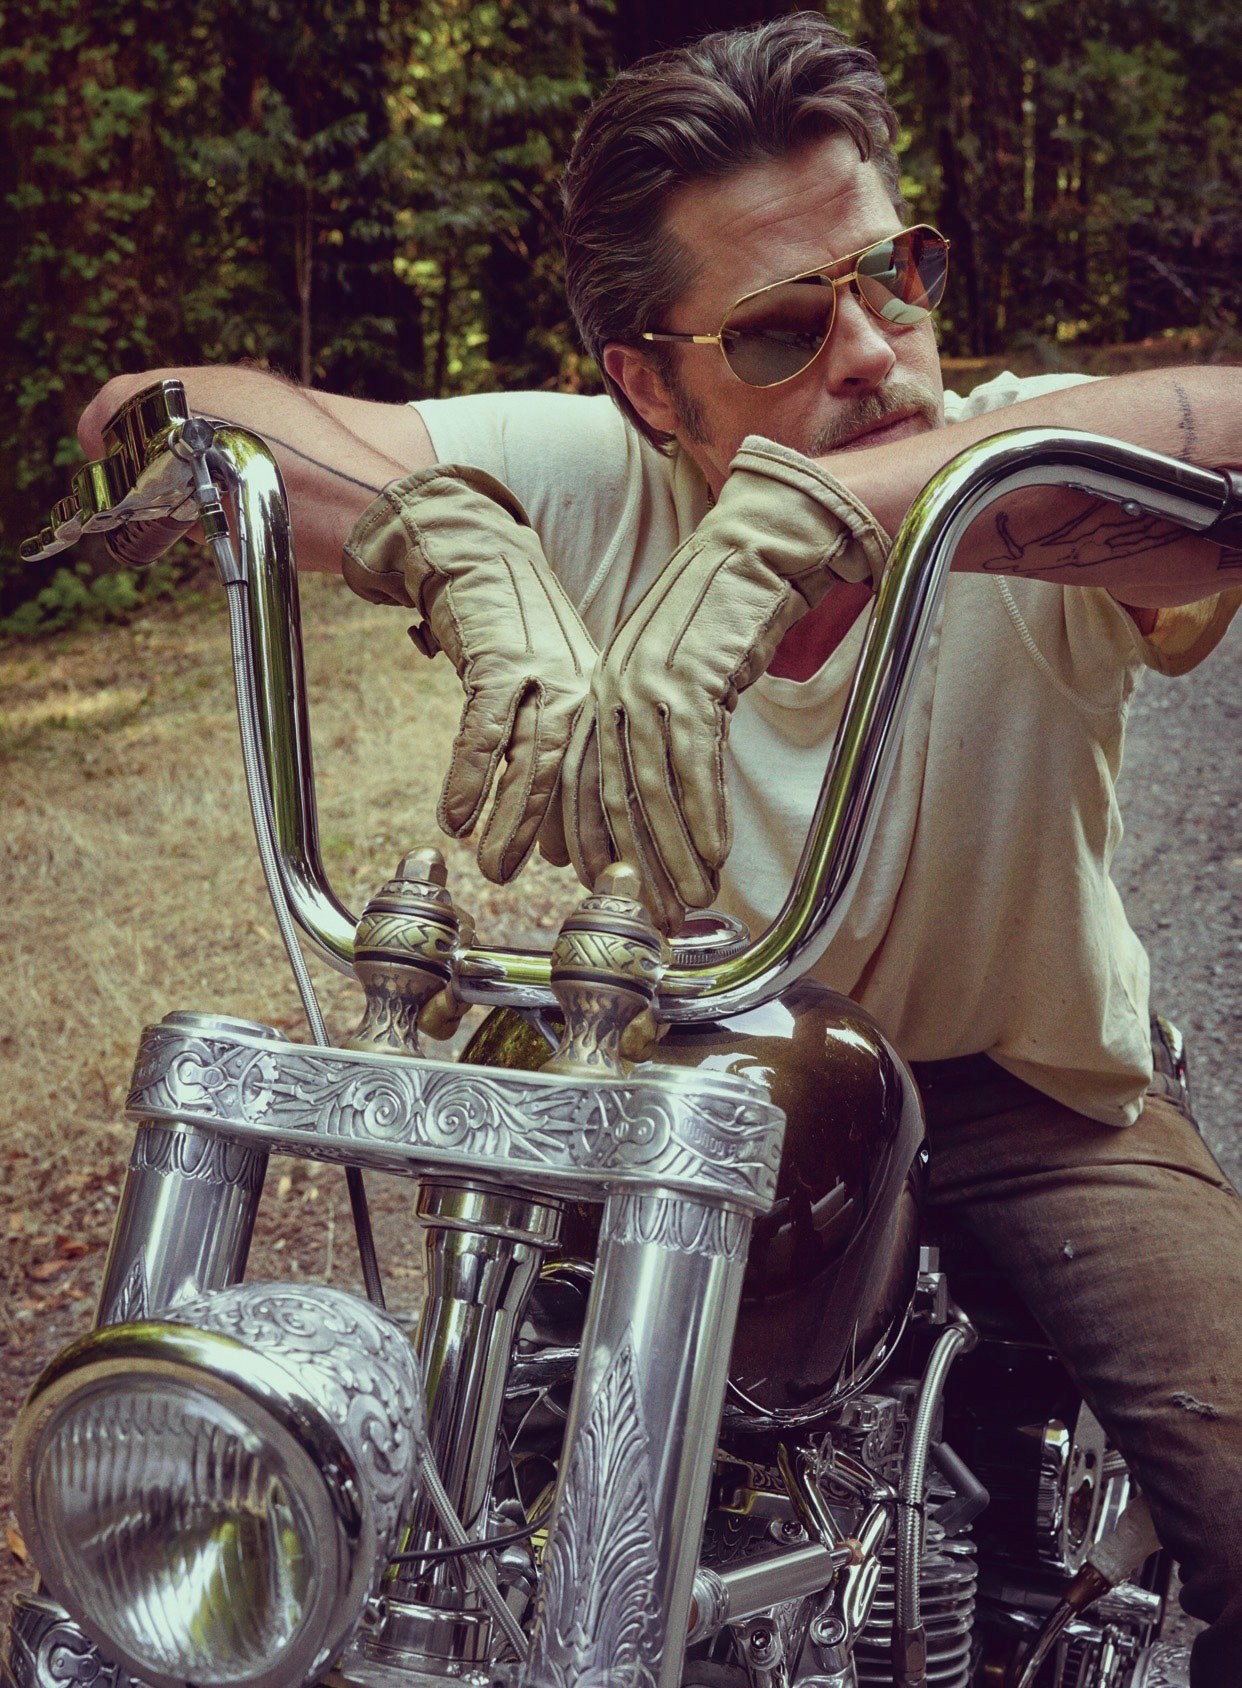 brad pitt when push comes to shove indian larry legacy paul cox custom chopper motorcycle